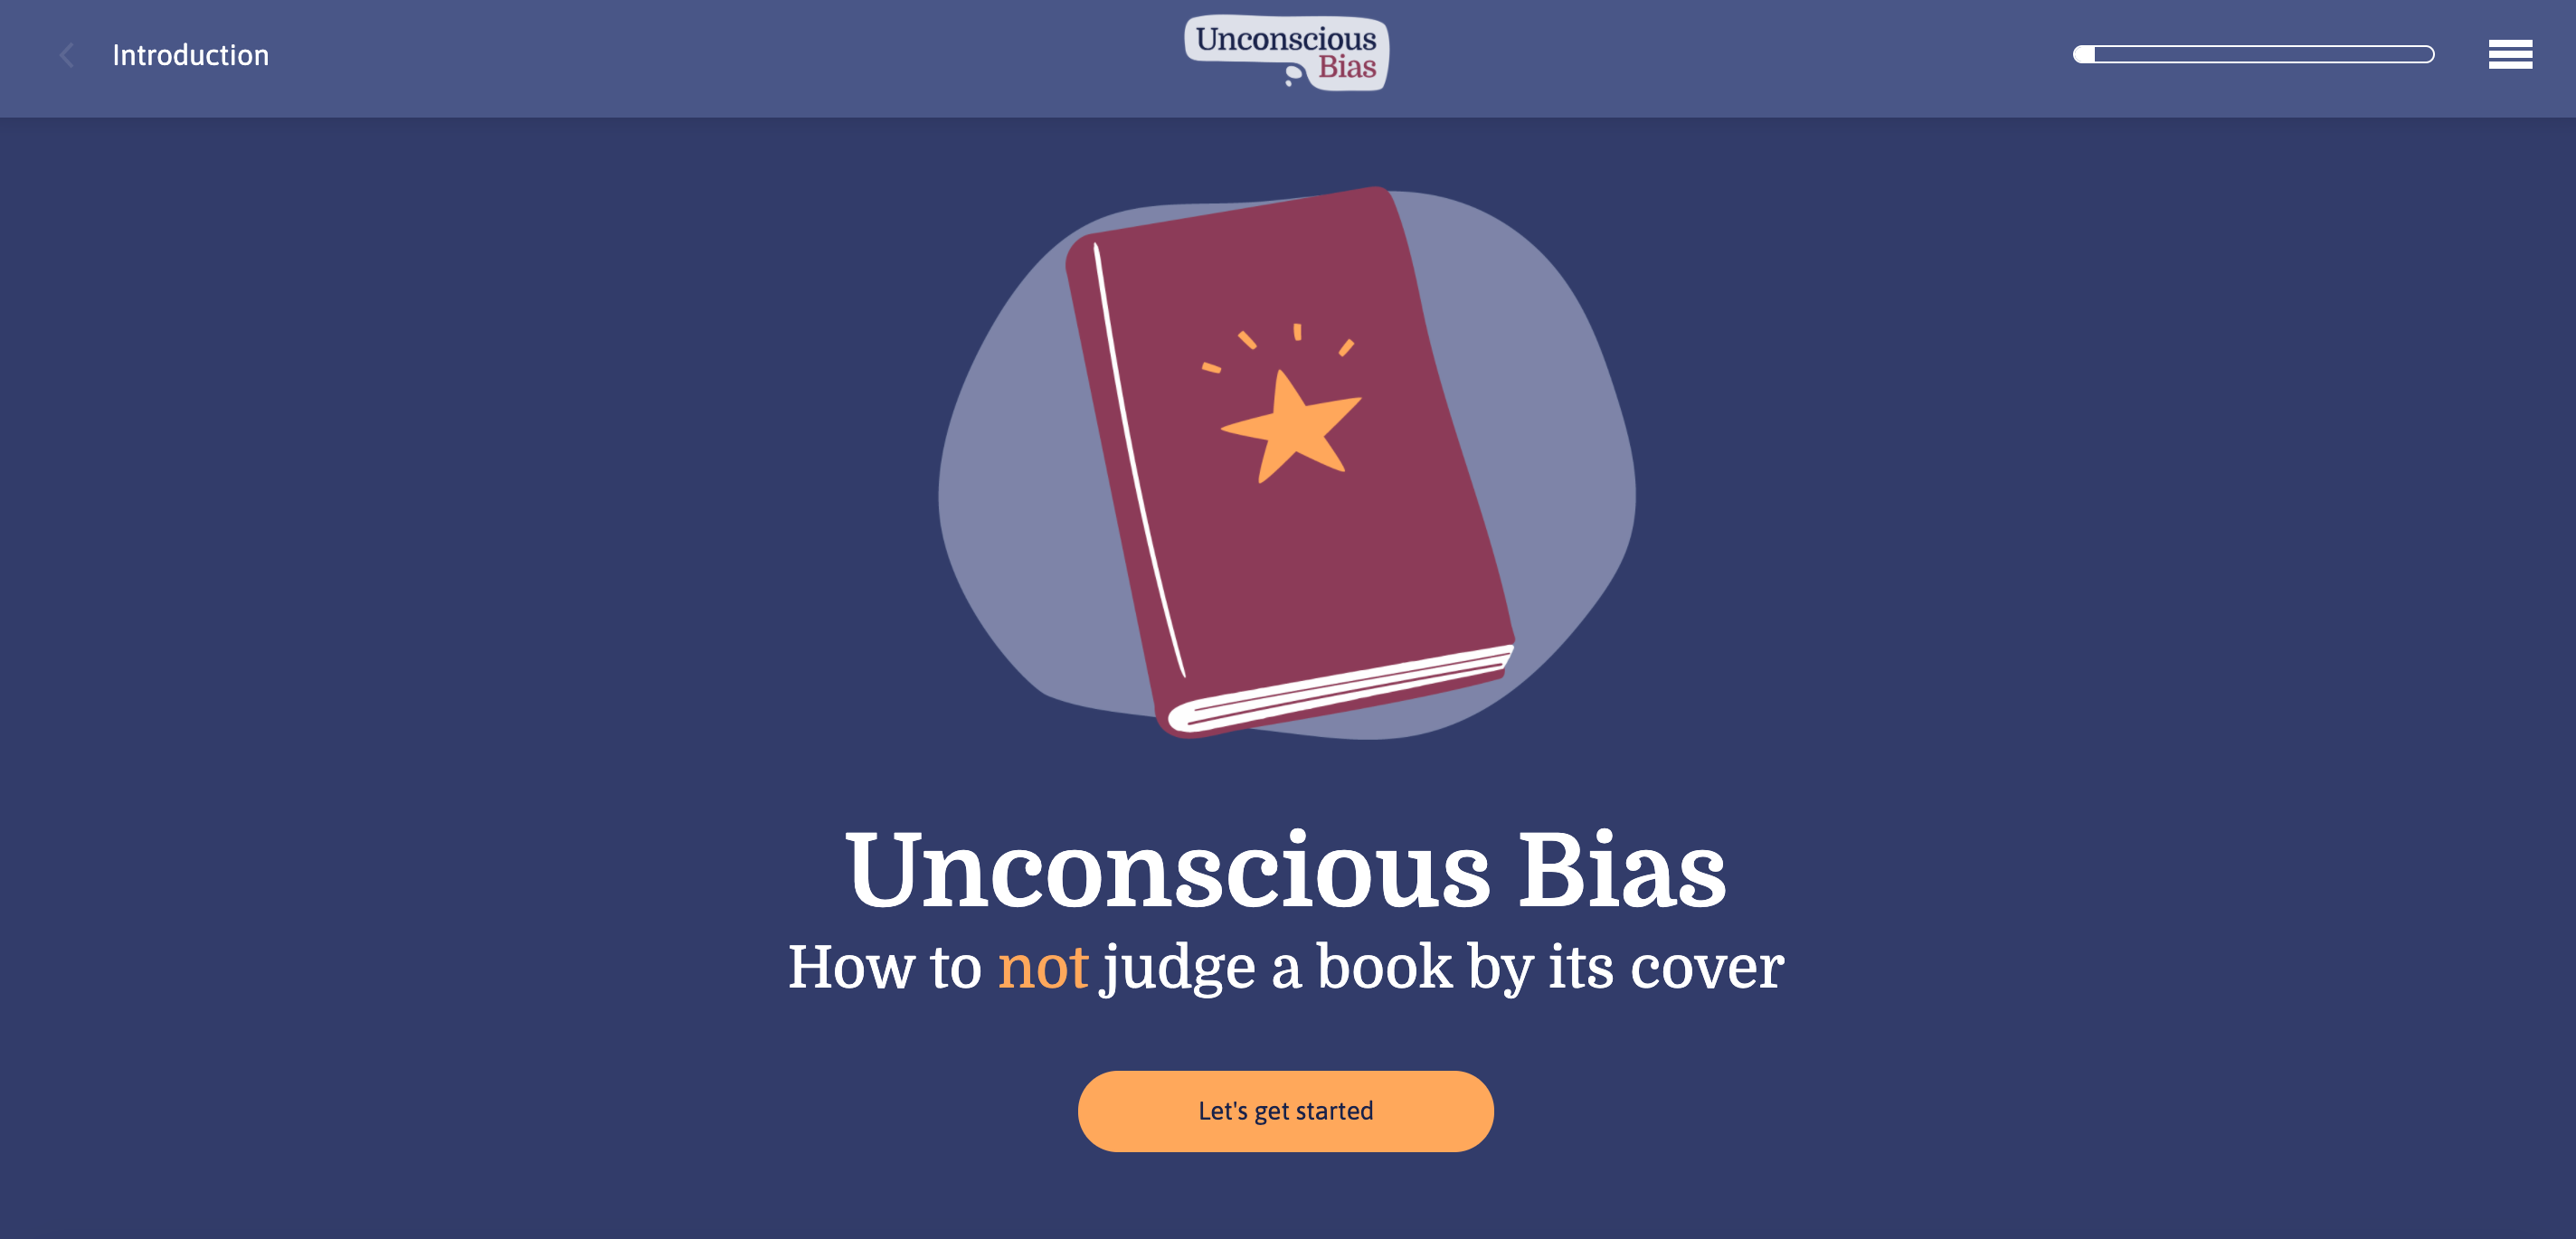 Unconscious Bias Cover Chameleon Interactions Splash Page Example